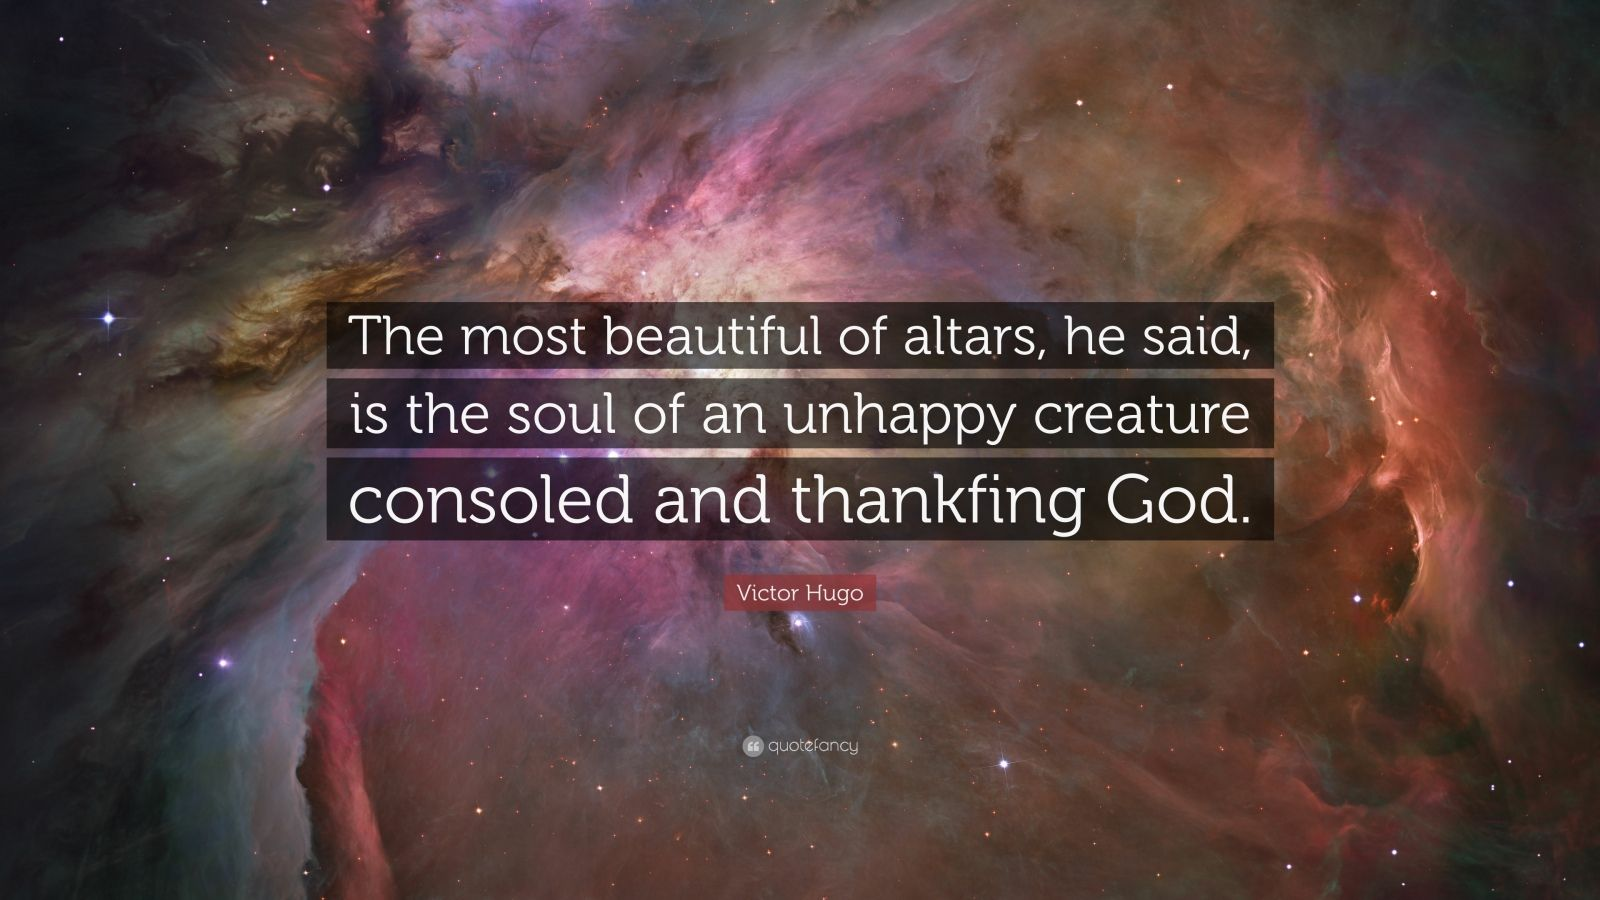 """Victor Hugo Quote: """"The most beautiful of altars, he said, is the soul of an unhappy creature consoled and thankfing God."""""""